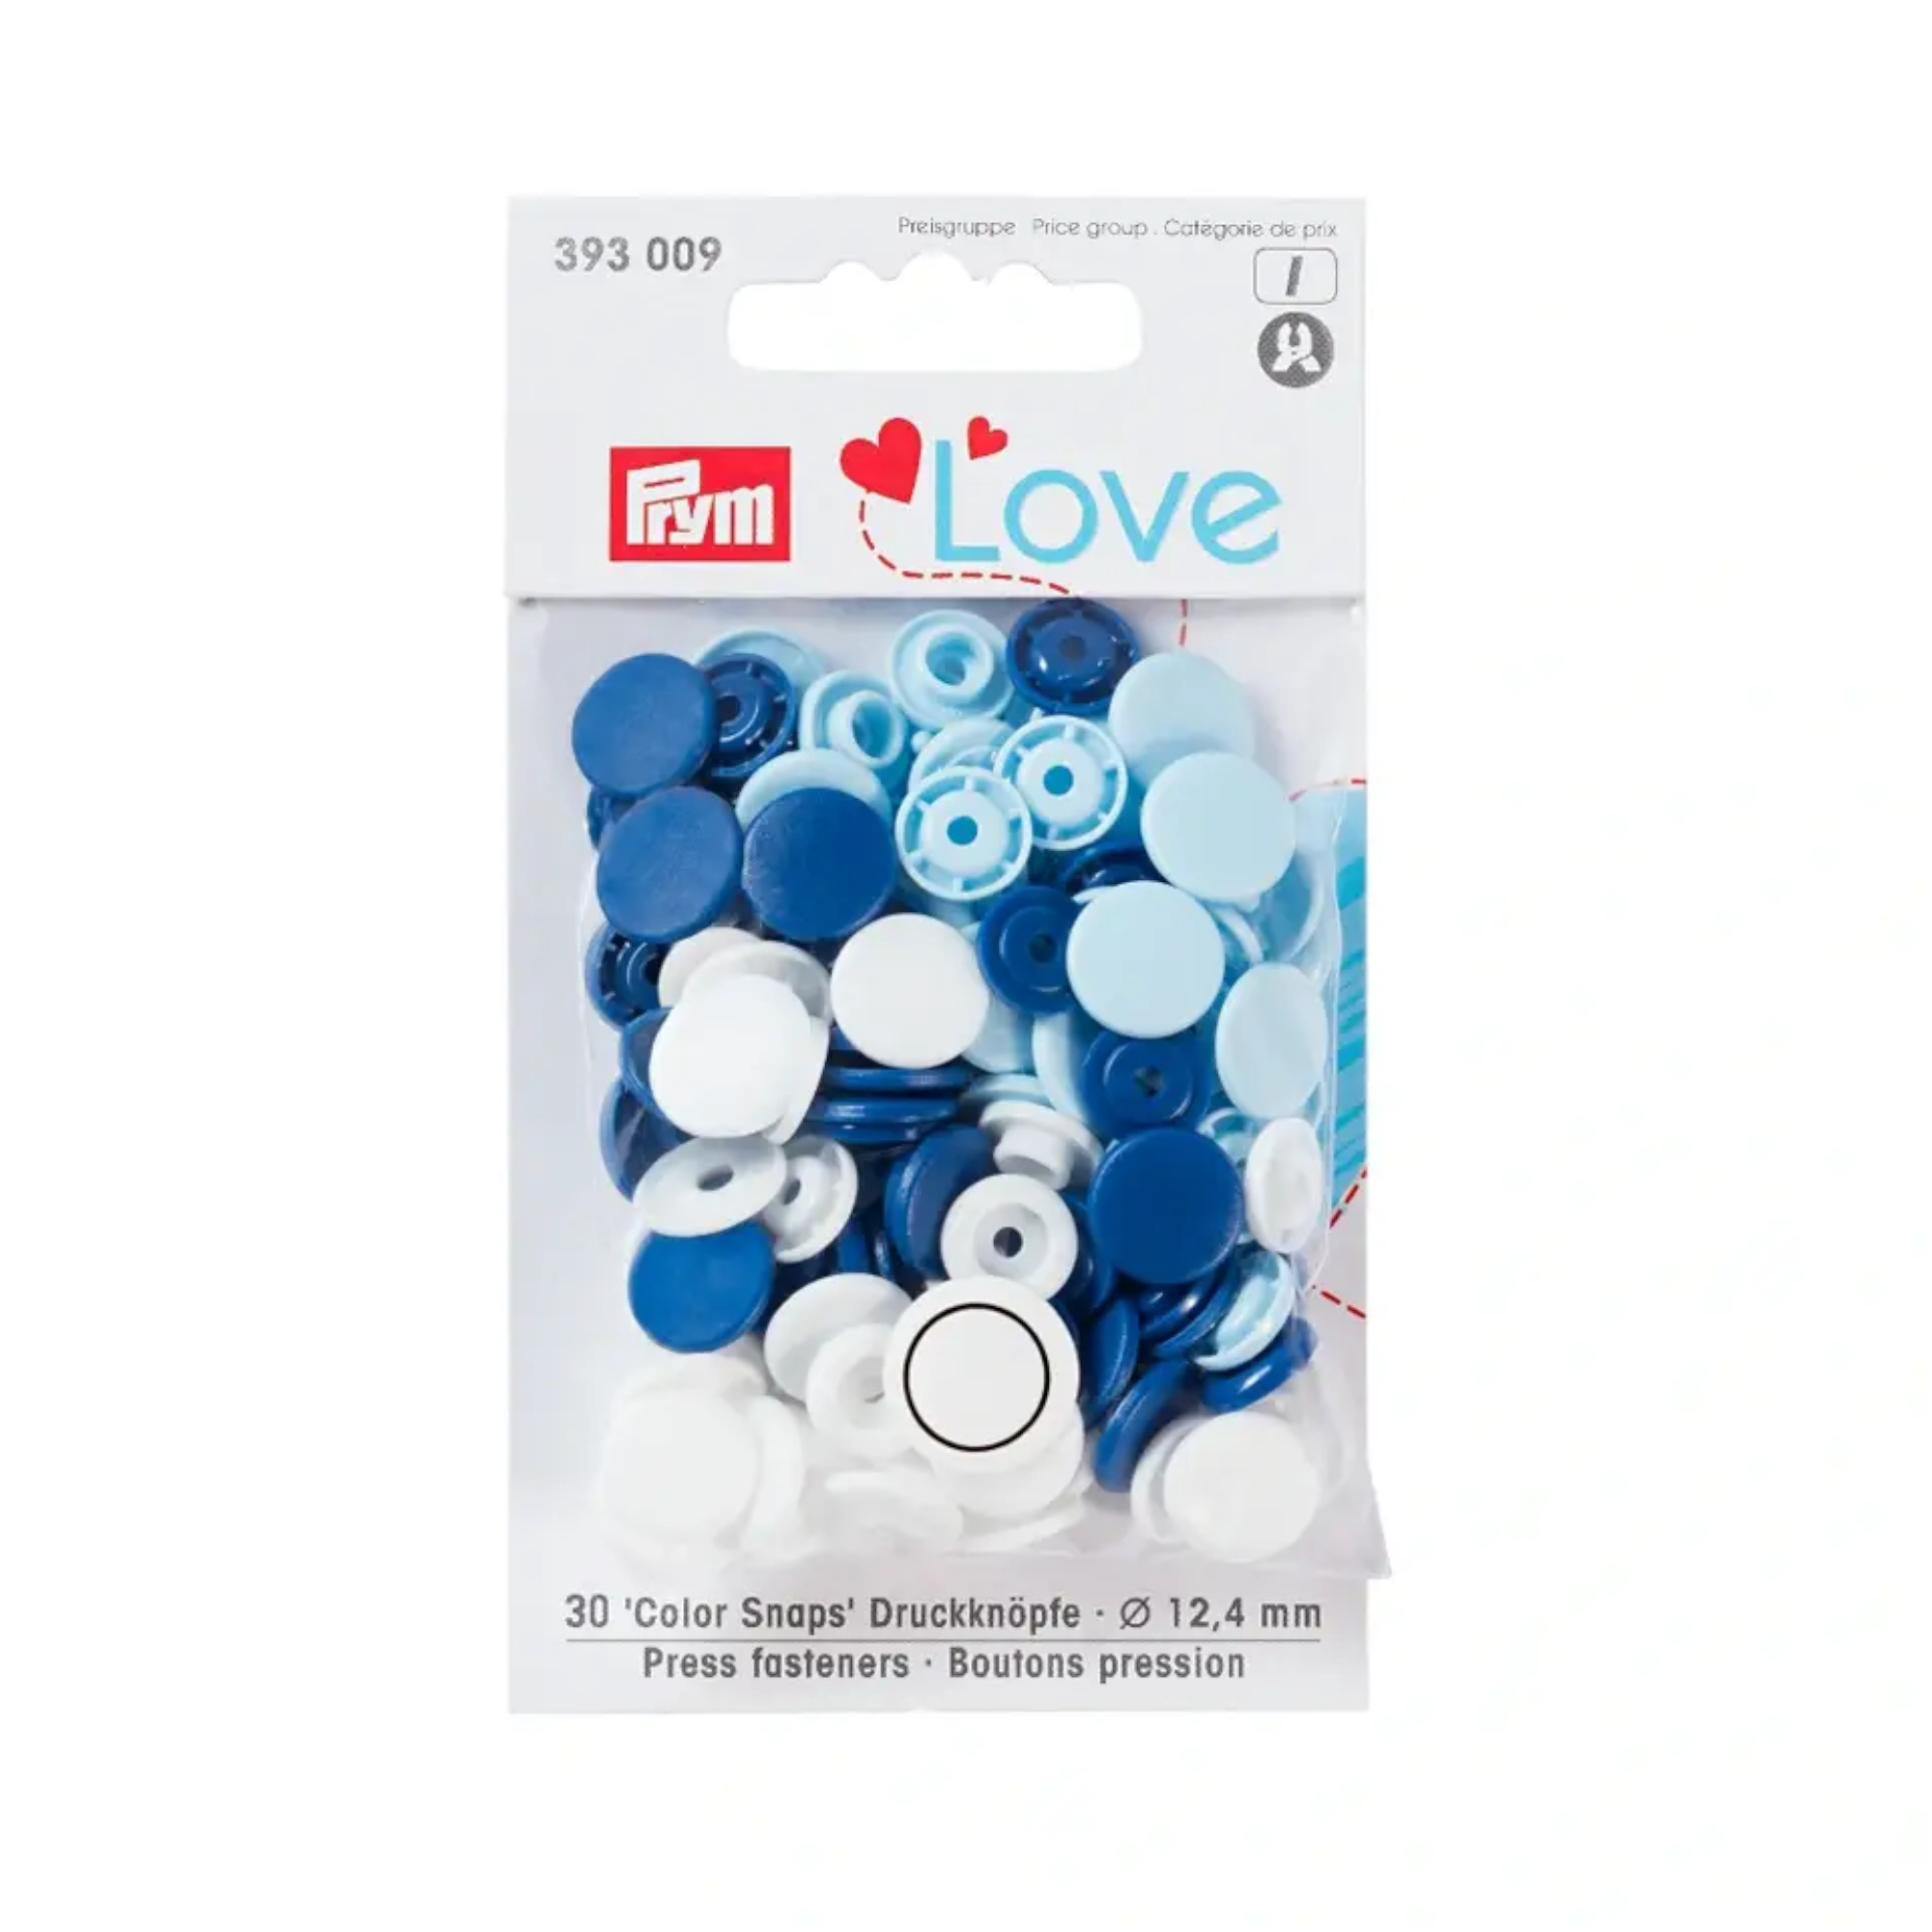 Prym Love pression button Color KST 12,4mm blue/white/light blue